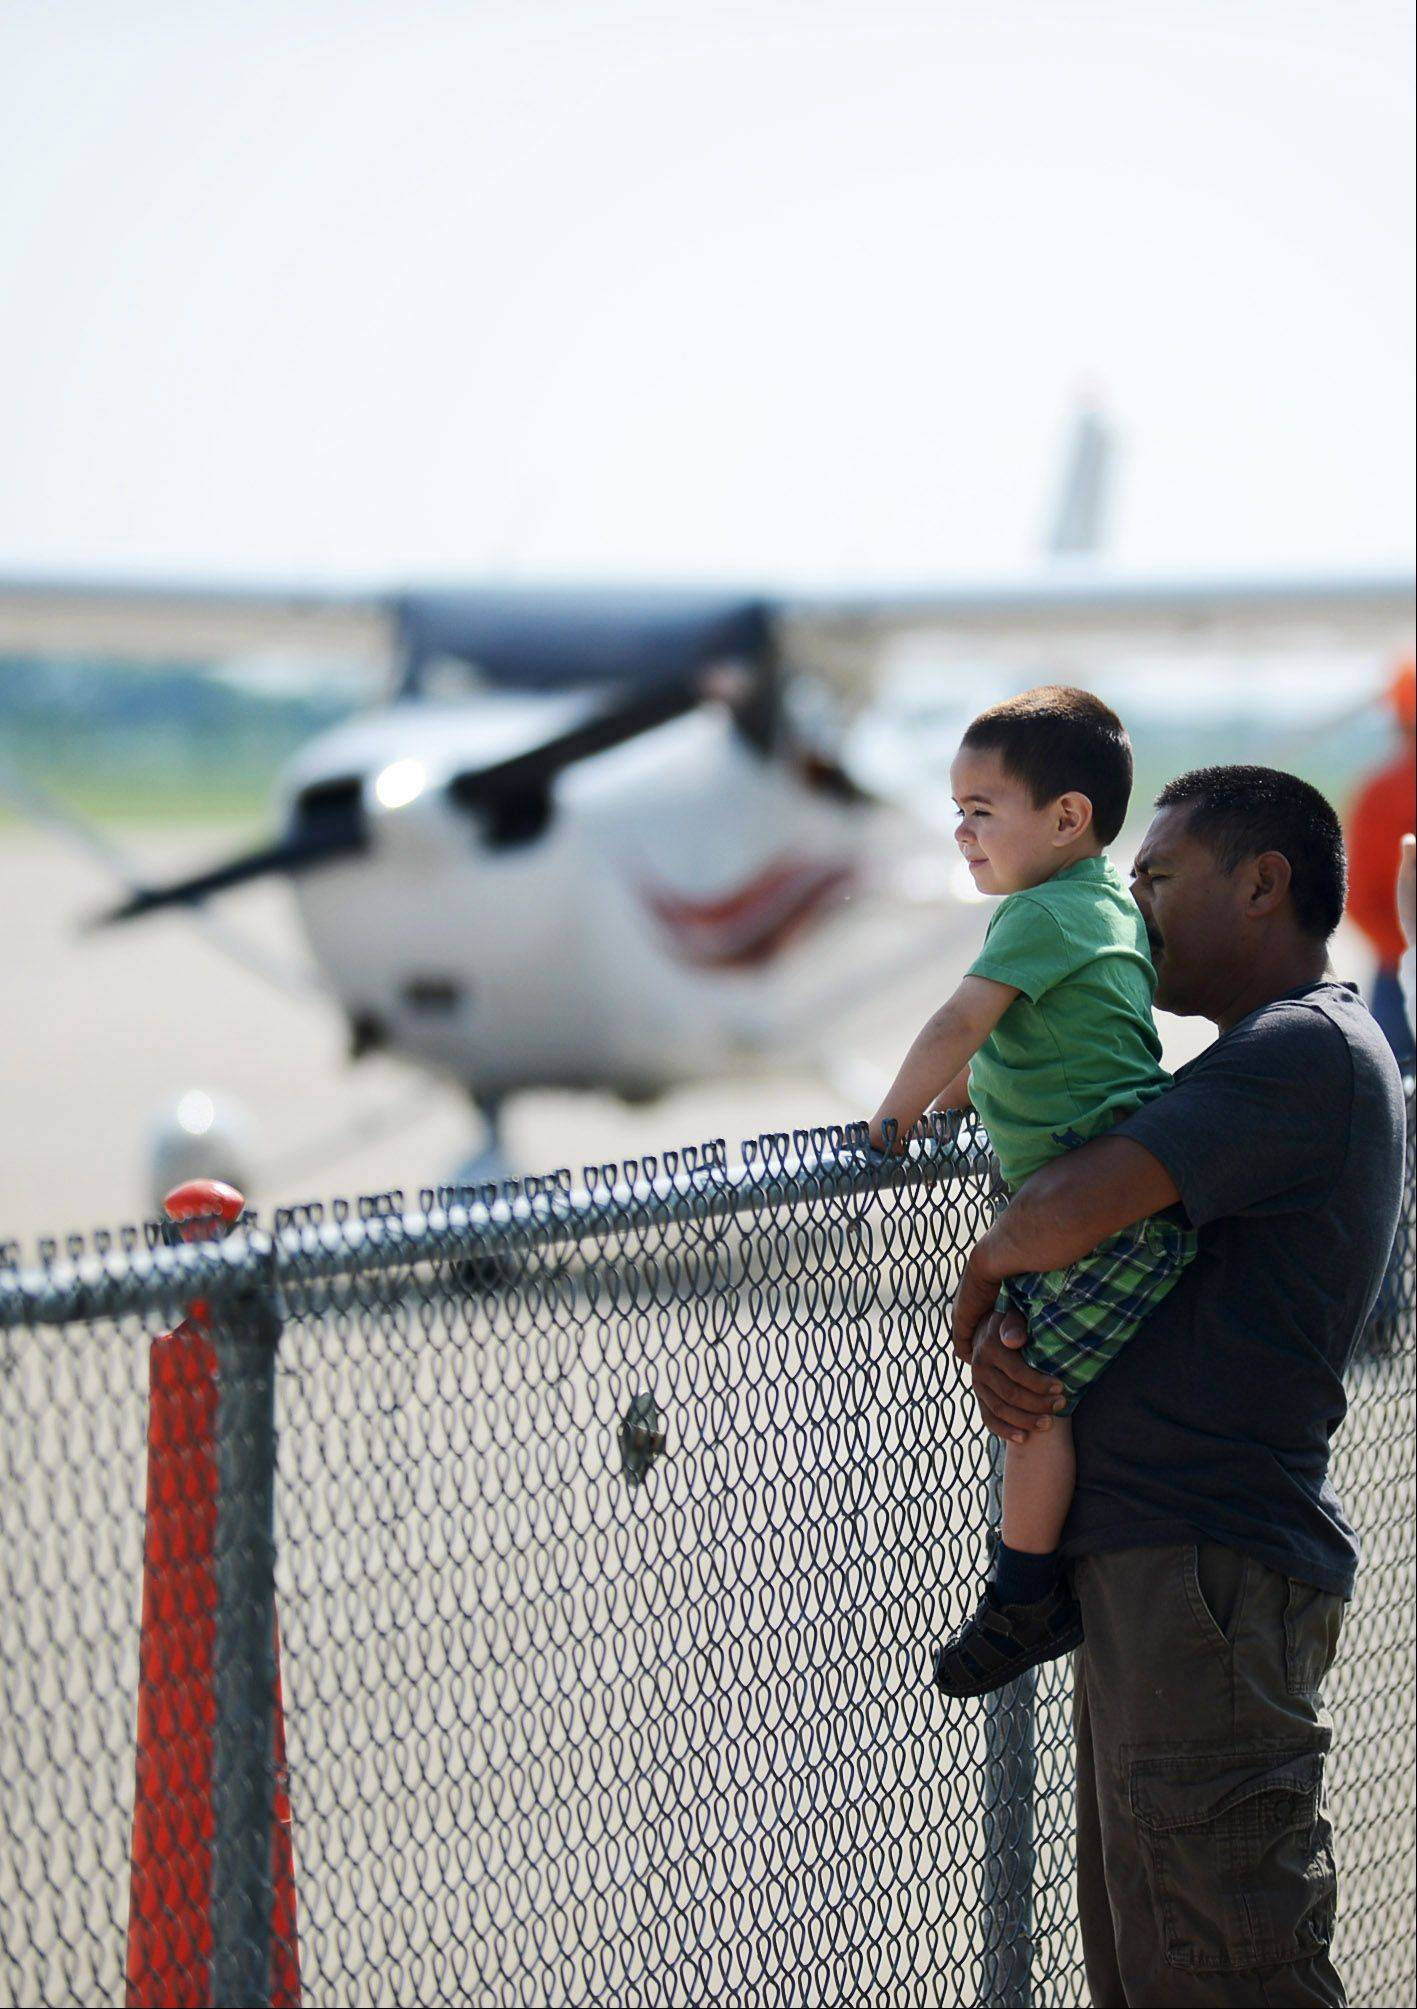 Santiago Landeros and his son, Santiago Jr., of Sugar Grove, check out the airplanes during the Young Eagles event Sunday at the Aurora Municipal Airport.